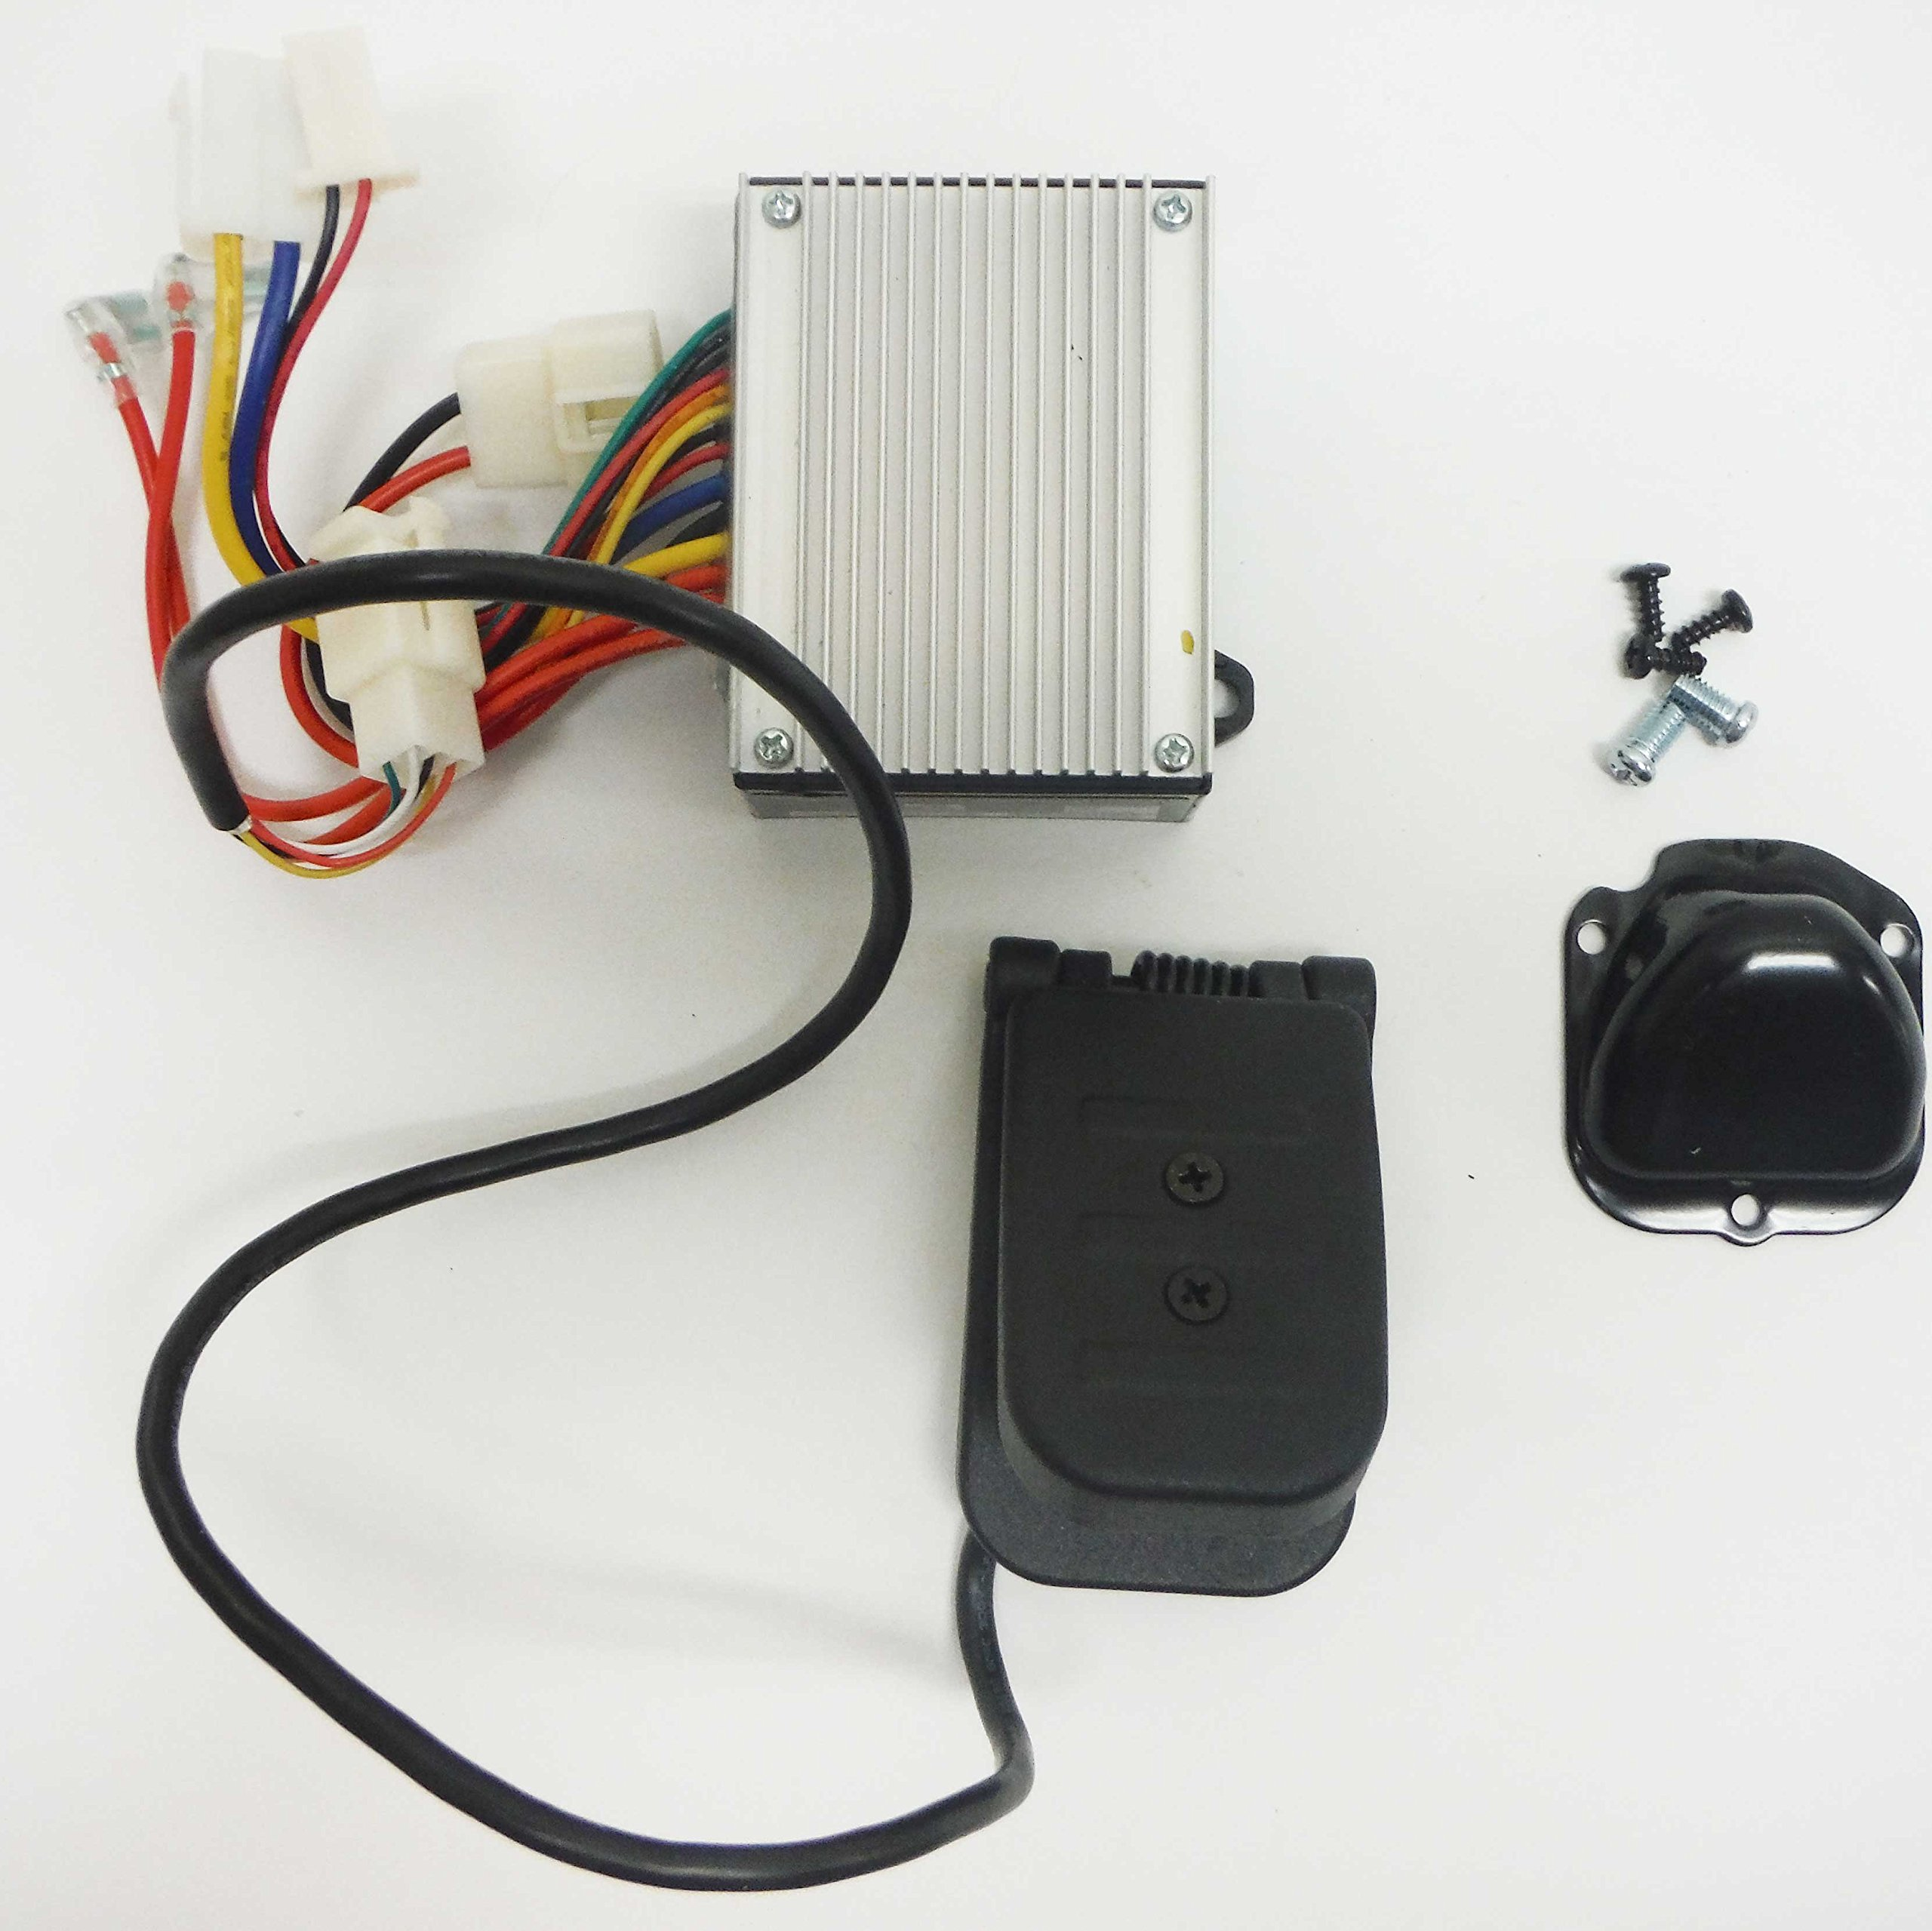 Crazy Cart Electrical Kit (7 Connector/Control Module & Foot Pedal) by Razor